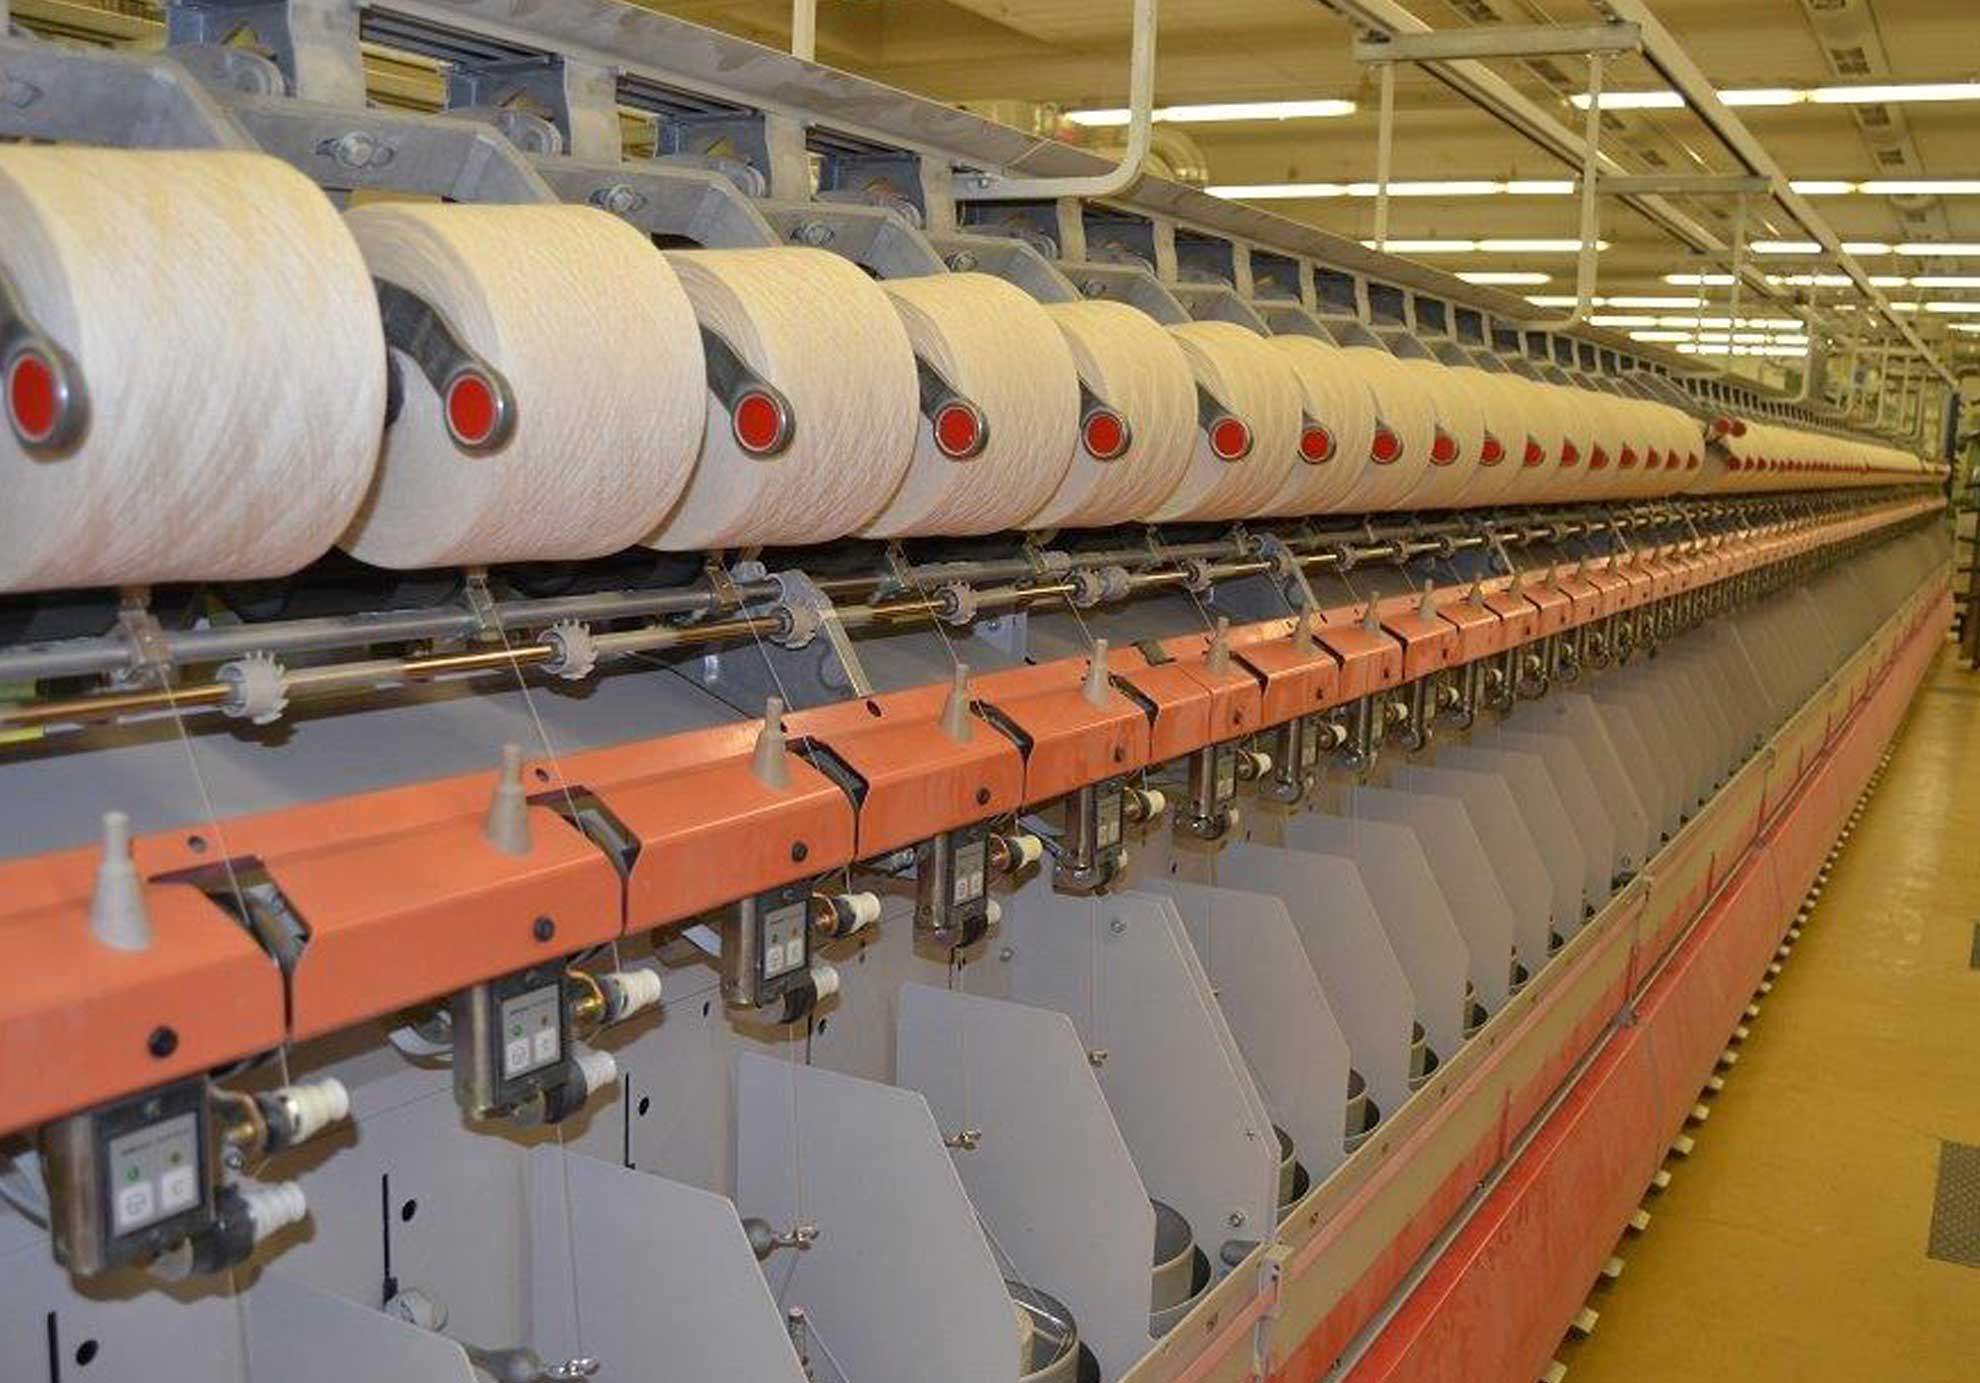 Imcotex textile machinery trading, sale of used textile machinery